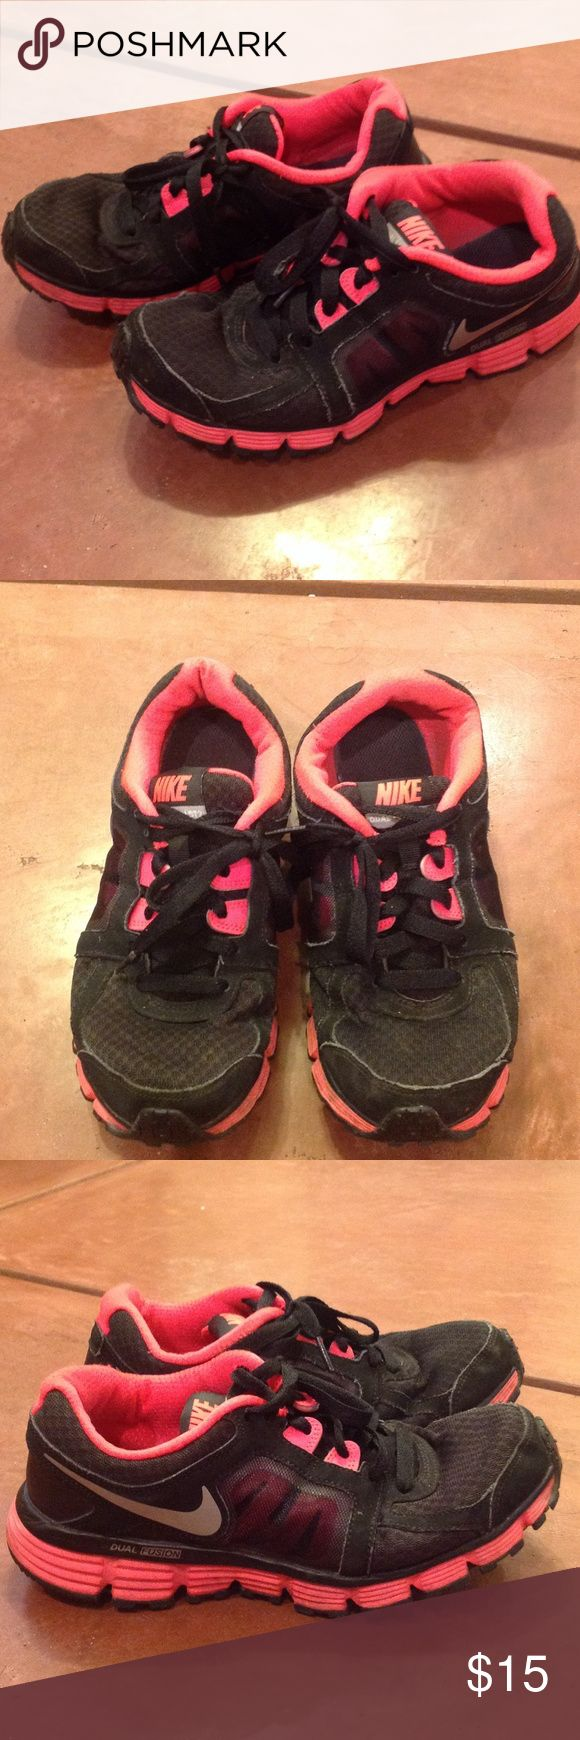 Hot Pink and Black Nike Tennis Shoes Size 7 Wore these for work, so they are definitely used but still in good condition. Nike Dual Fusion tennis shoes. Size 7. All rubber still intact. Smoke free pet free home. Very comfy for work or running. Make an offer! Nike Shoes Athletic Shoes